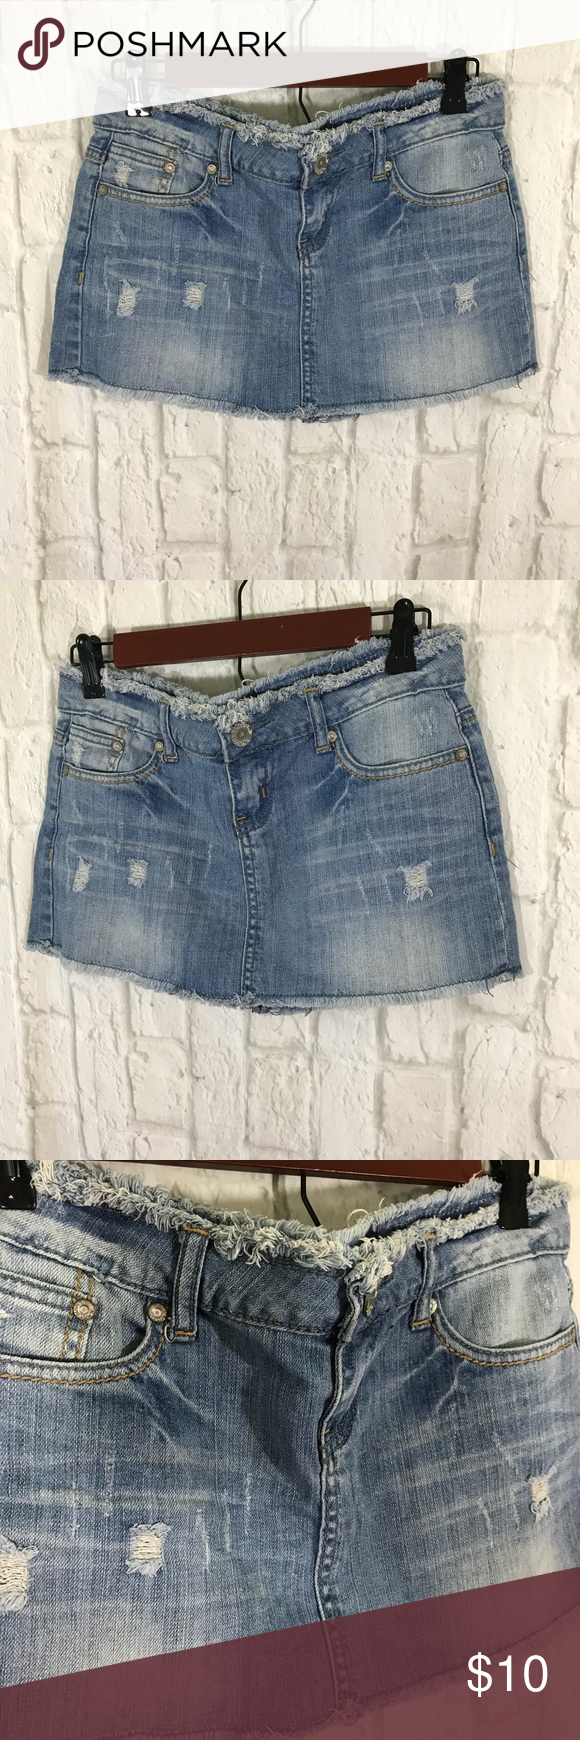 5c33e7fd73d Almost Famous Jean Skirt Almost Famous Light Wash Frayed   Distressed Size  5 Skirt EUC! Almost Famous Skirts Mini